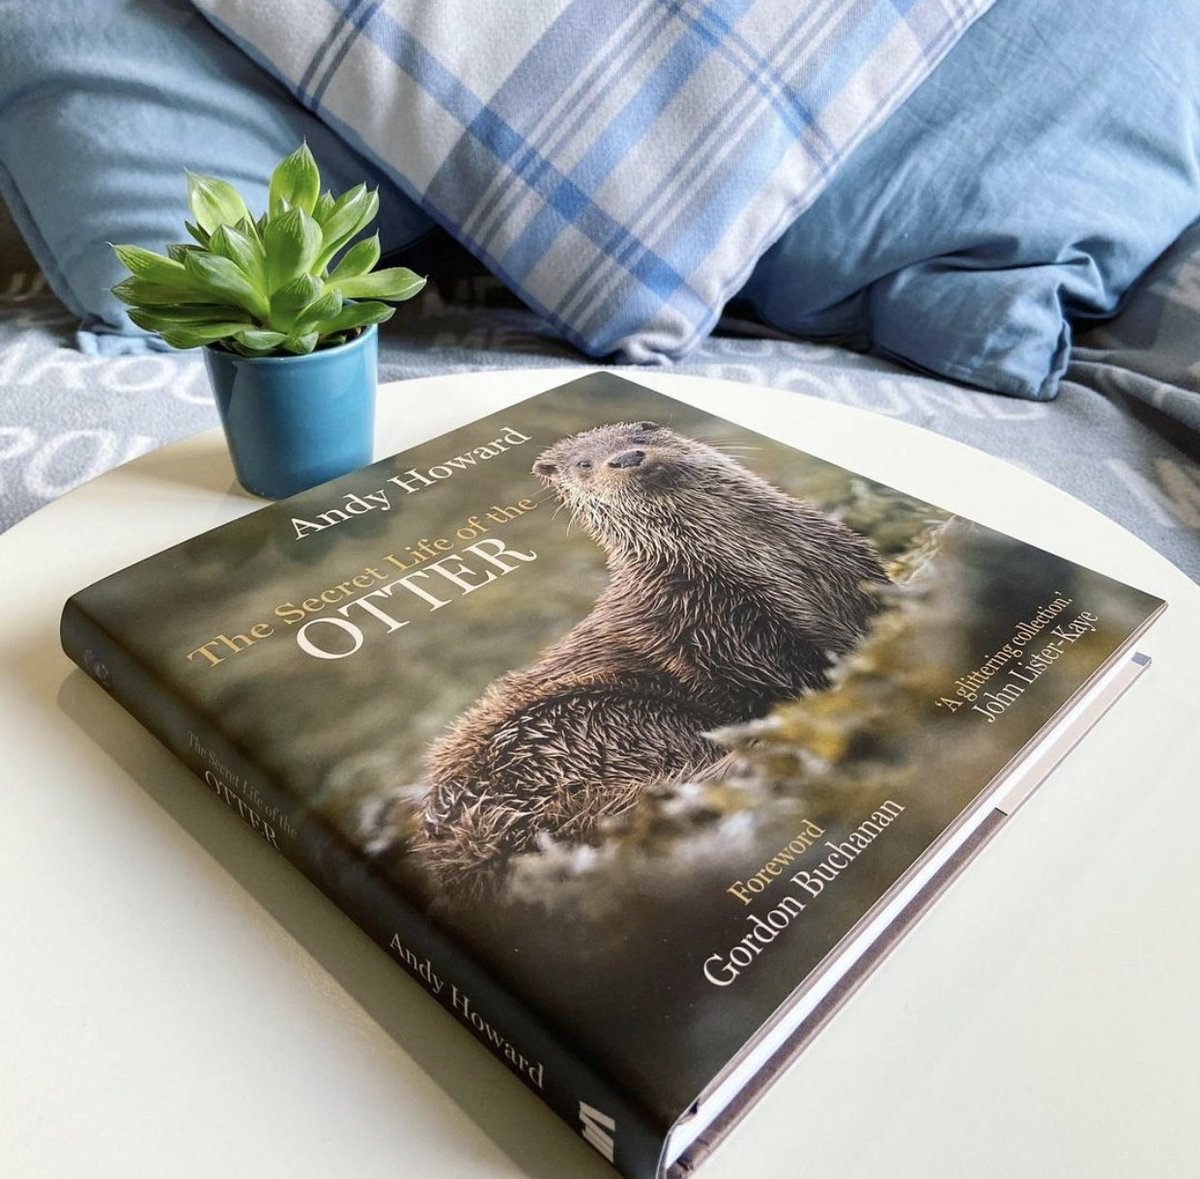 I'm delighted to announce the arrival of my third book! 'The Secret Life Of The Otter' will be published early this Spring. Signed copies will be available on pre-order from my website soon, I'll keep you posted when.  It will also be available from all good book retailers.